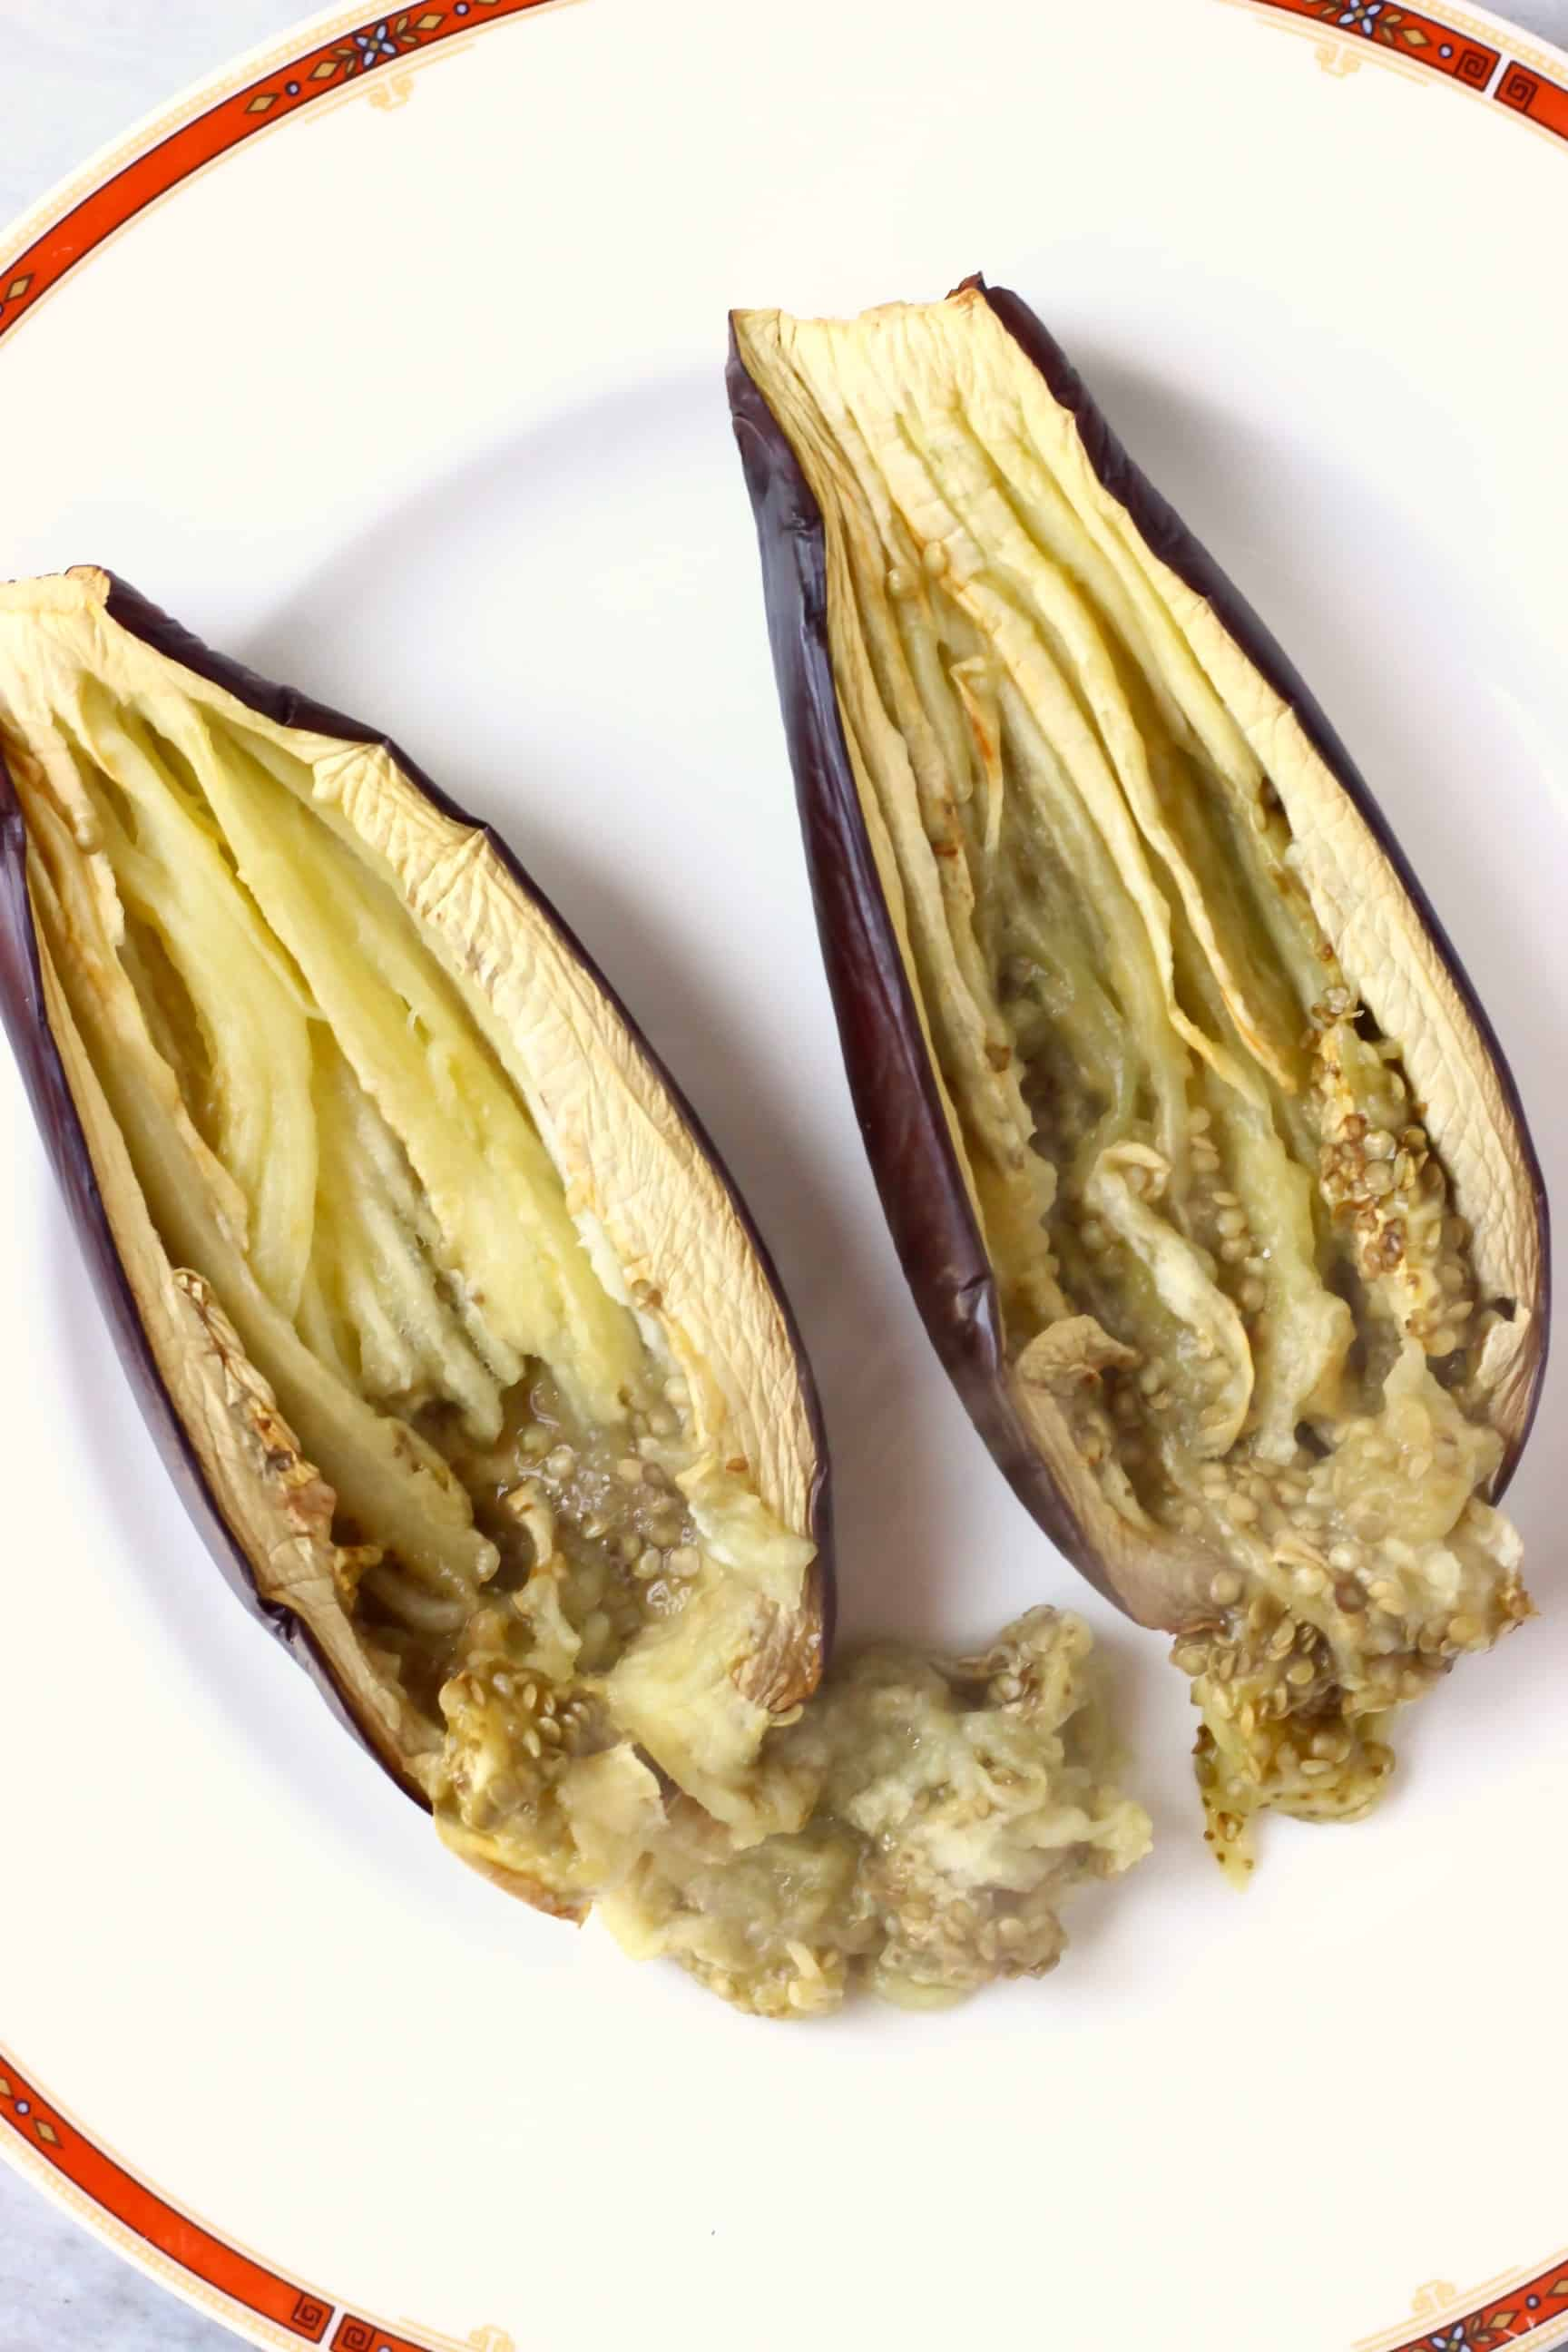 Two roasted eggplant halves being shredded on a white plate